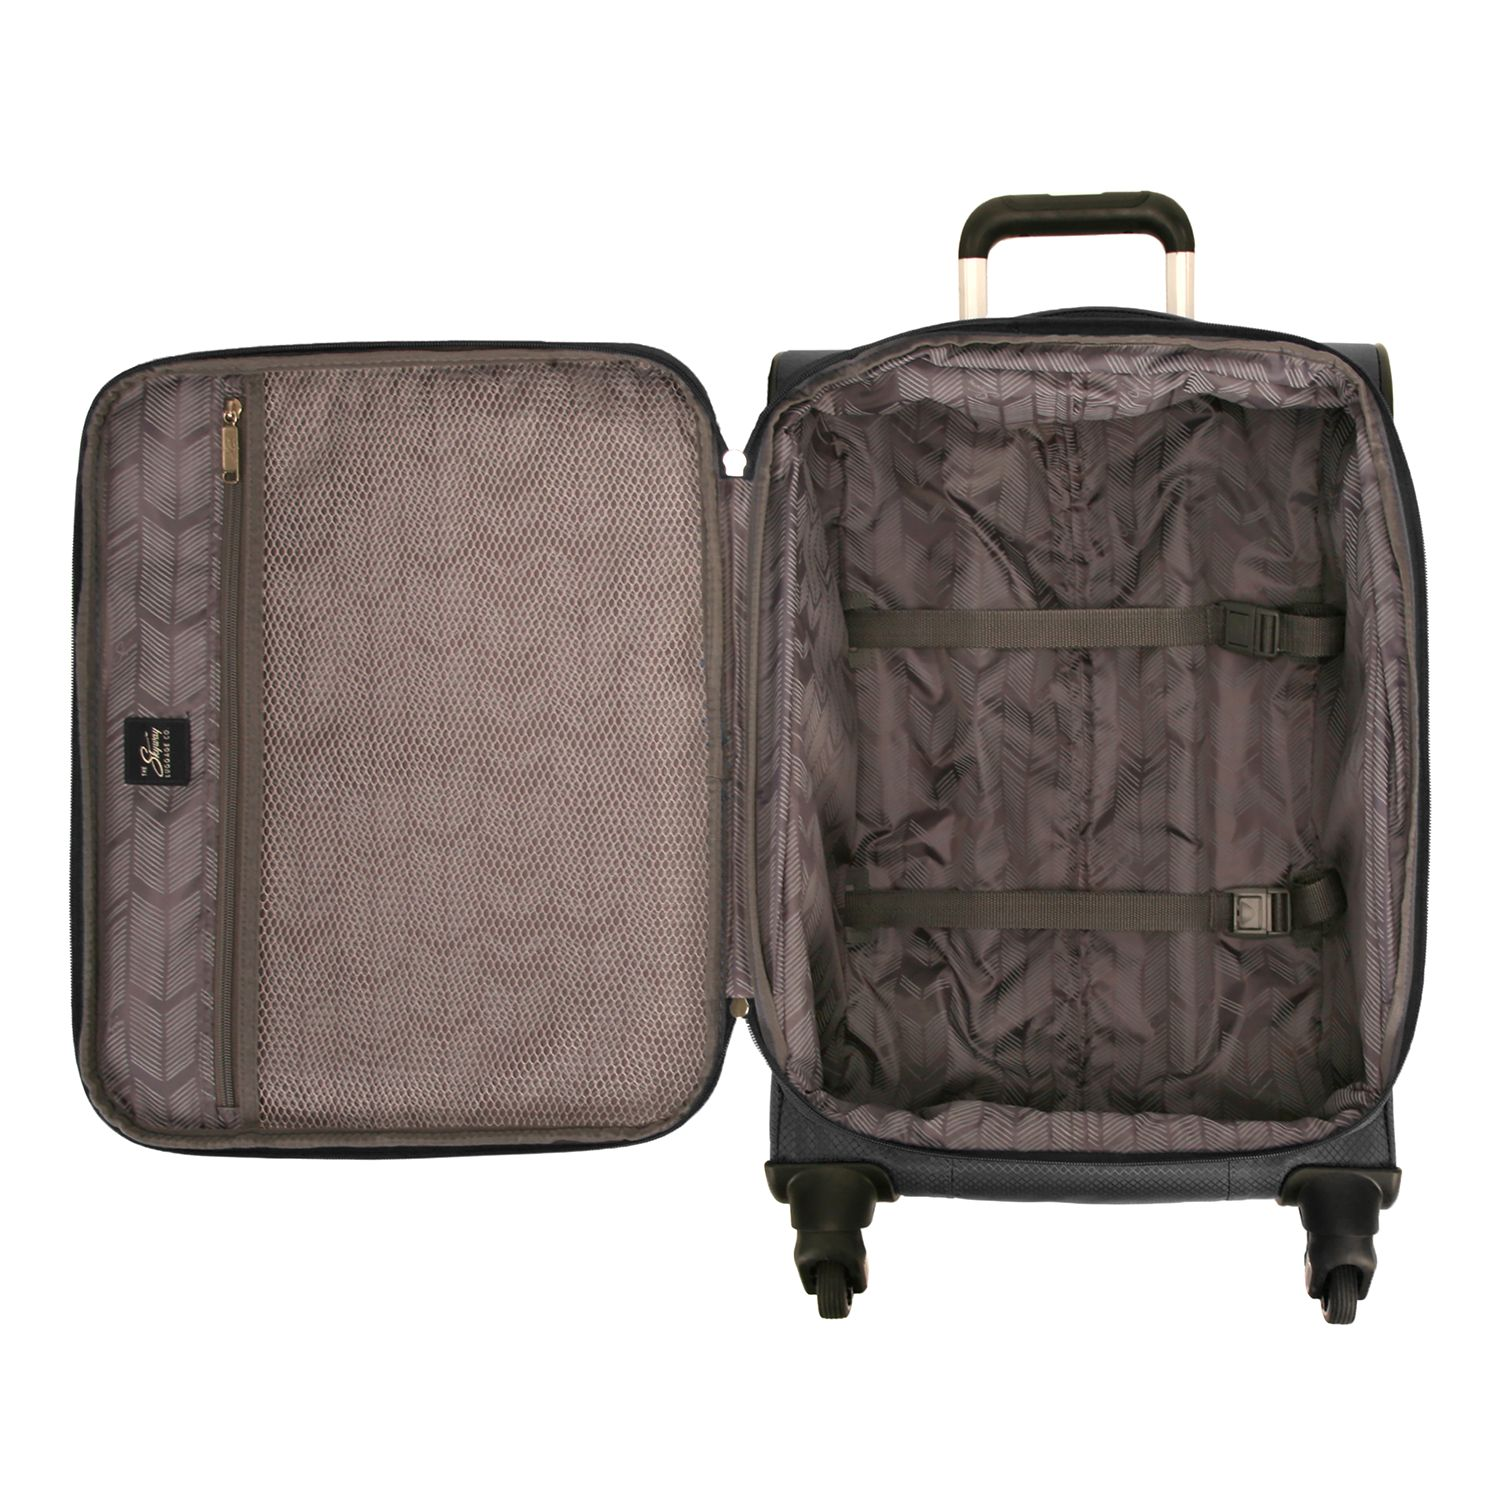 e6938dedadf Luggage & Suitcases | Kohl's